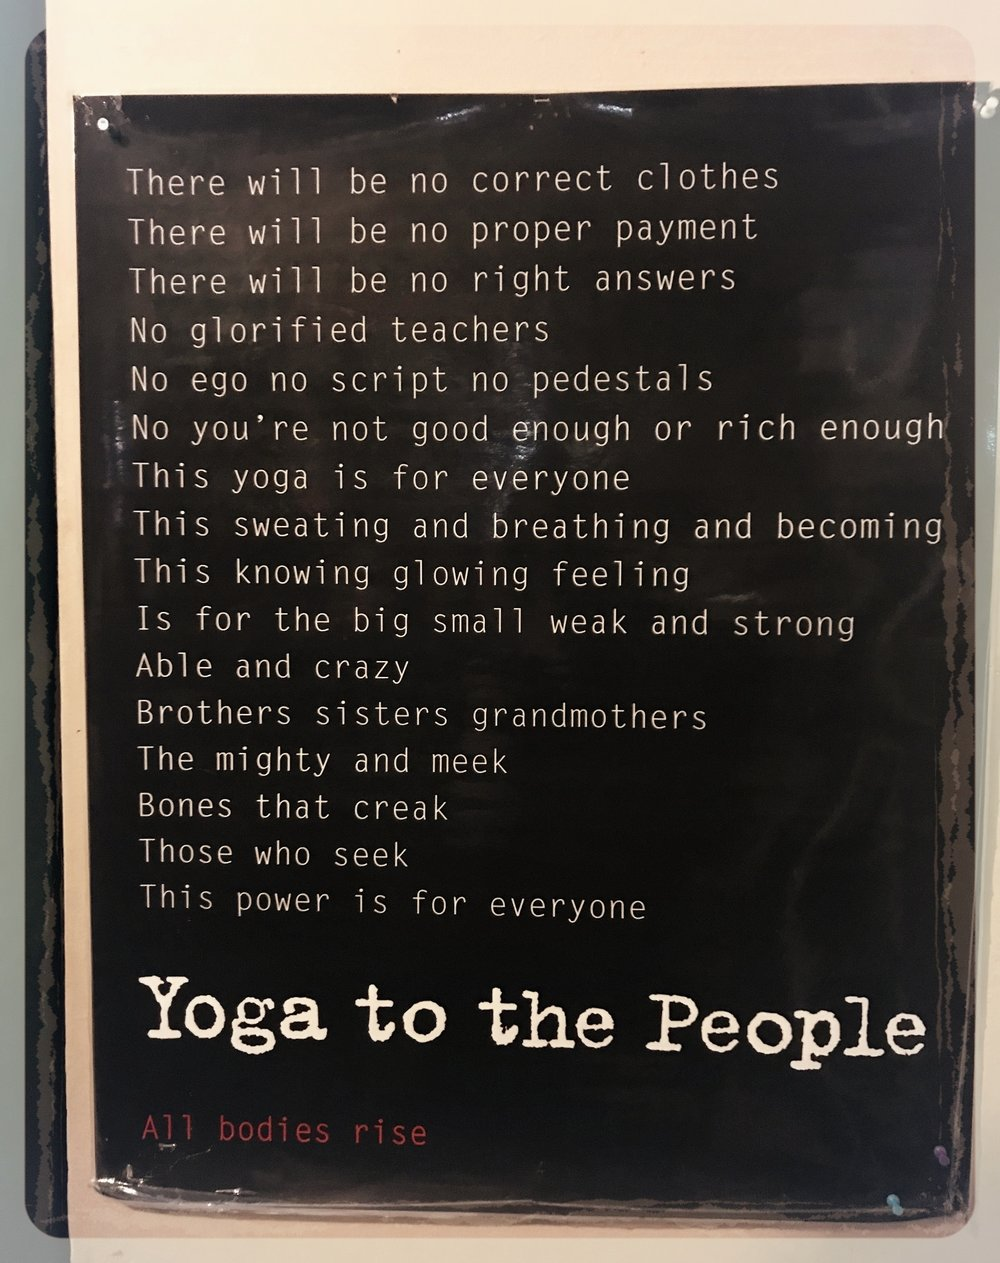 Yoga To The People.jpg